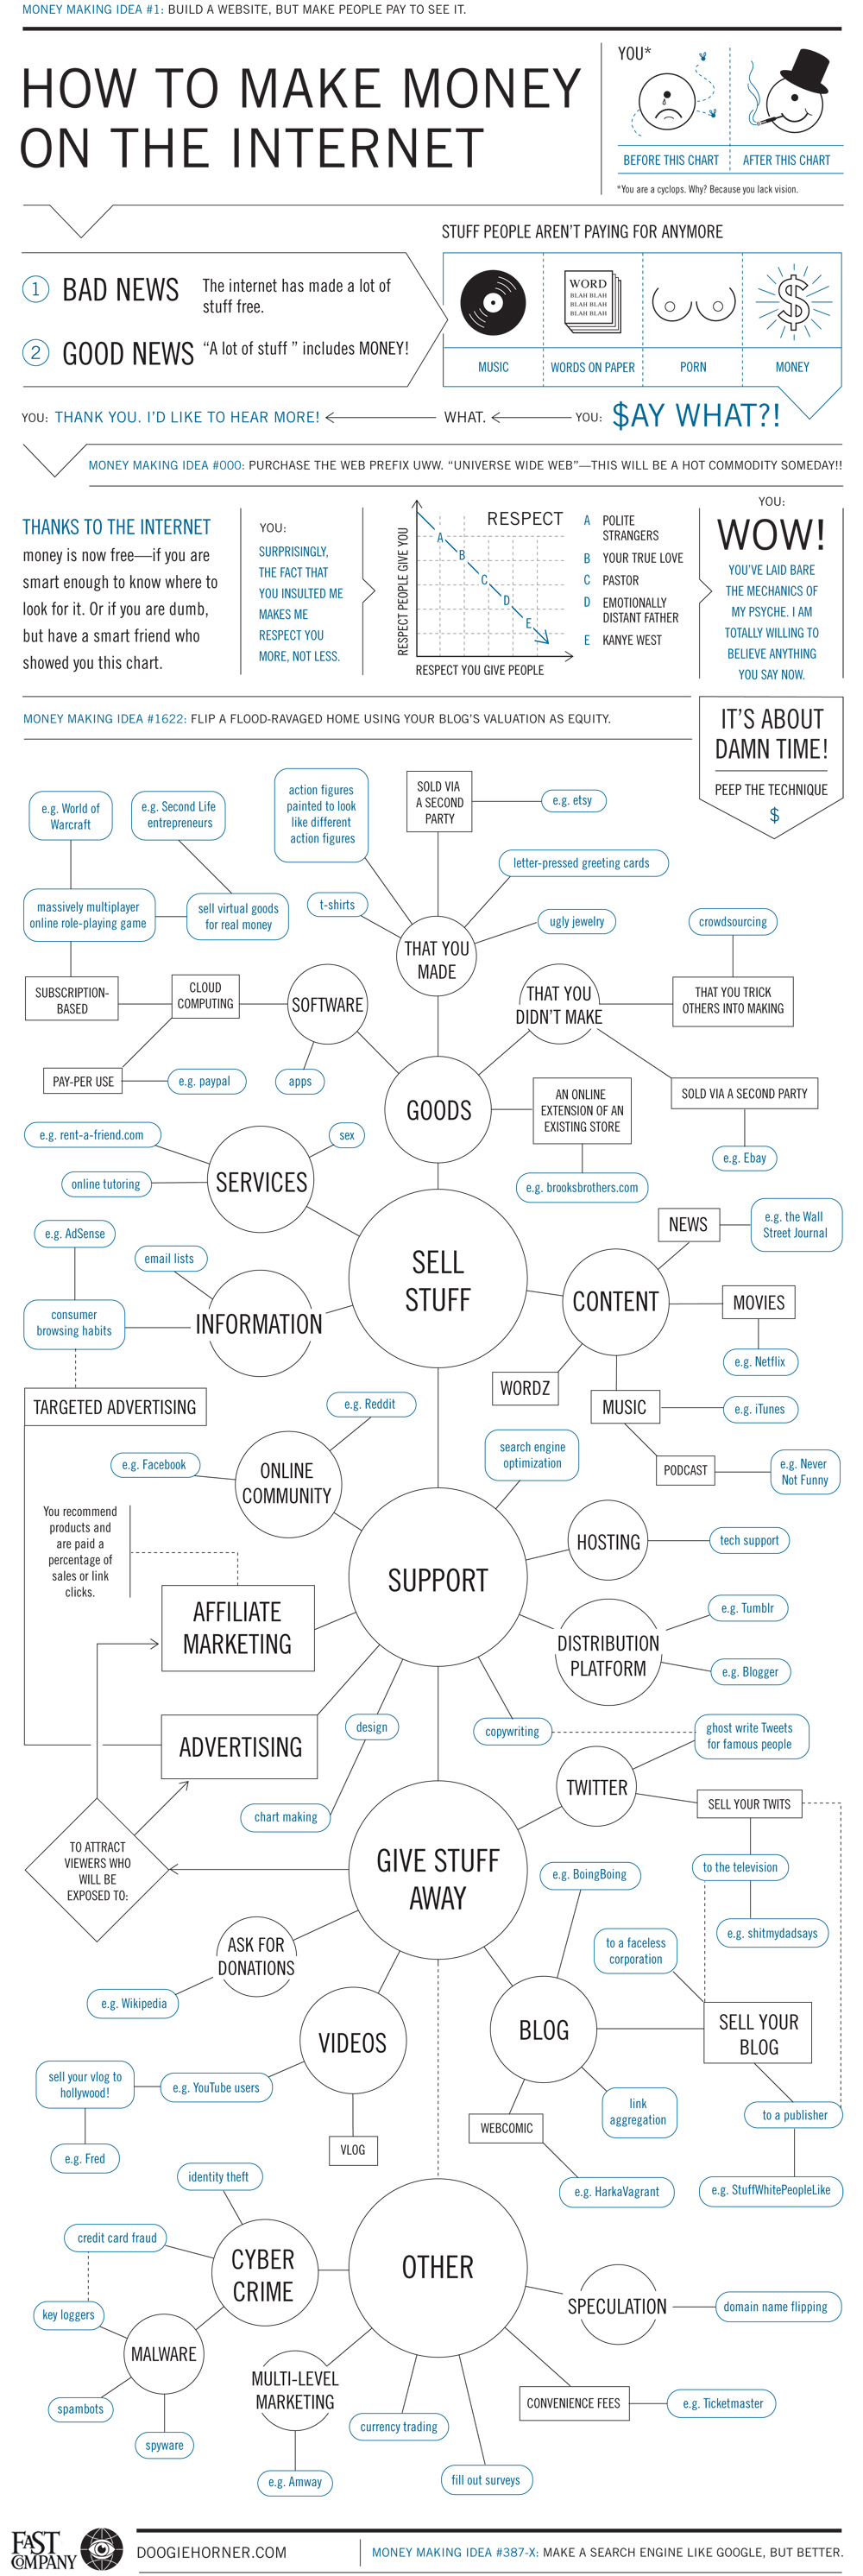 how to make money on the internet - Making Flow Charts Online